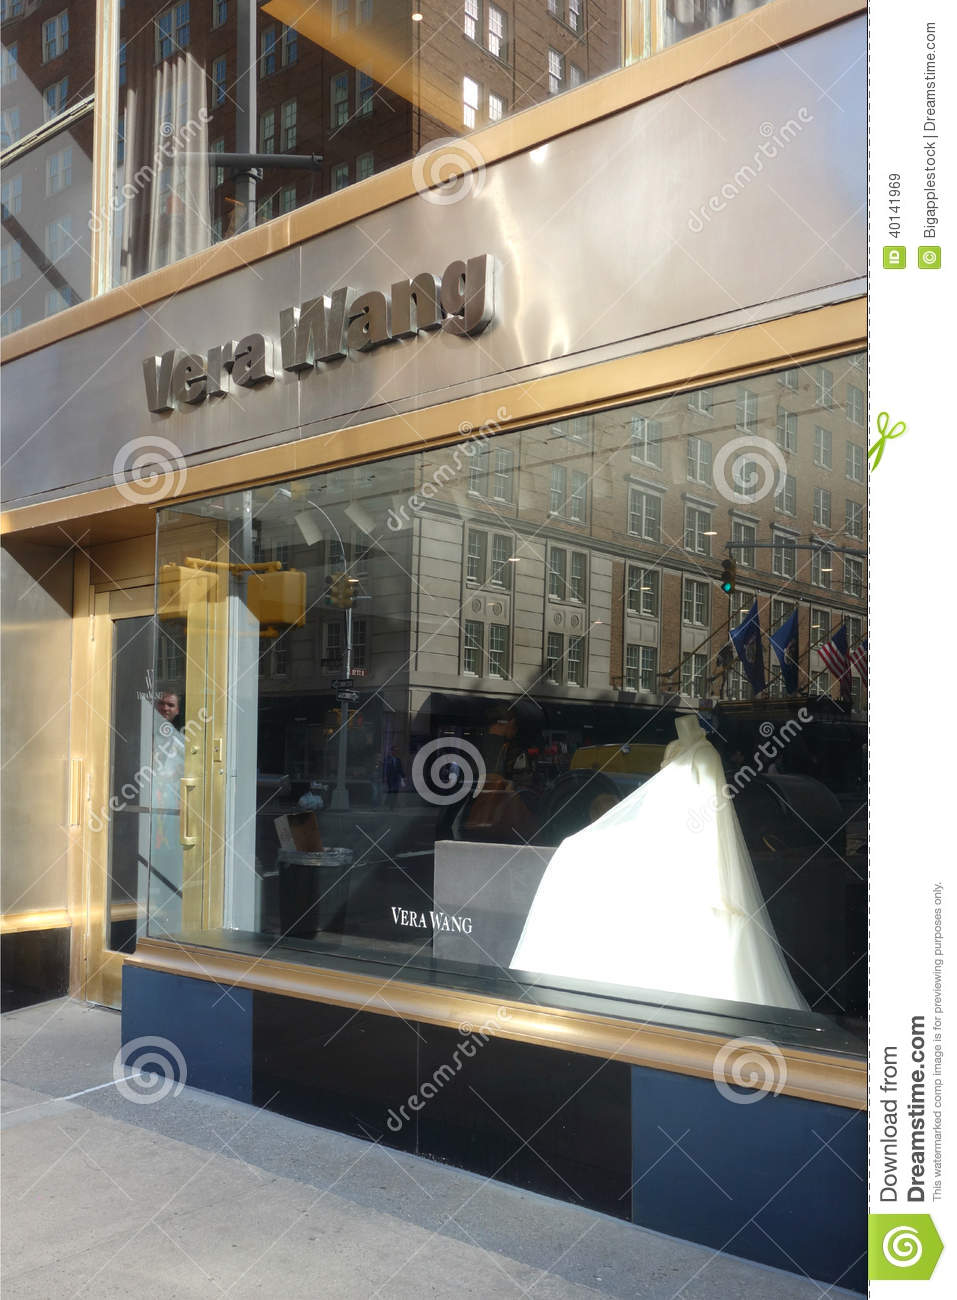 Vera Wang Store editorial stock image. Image of retail ...